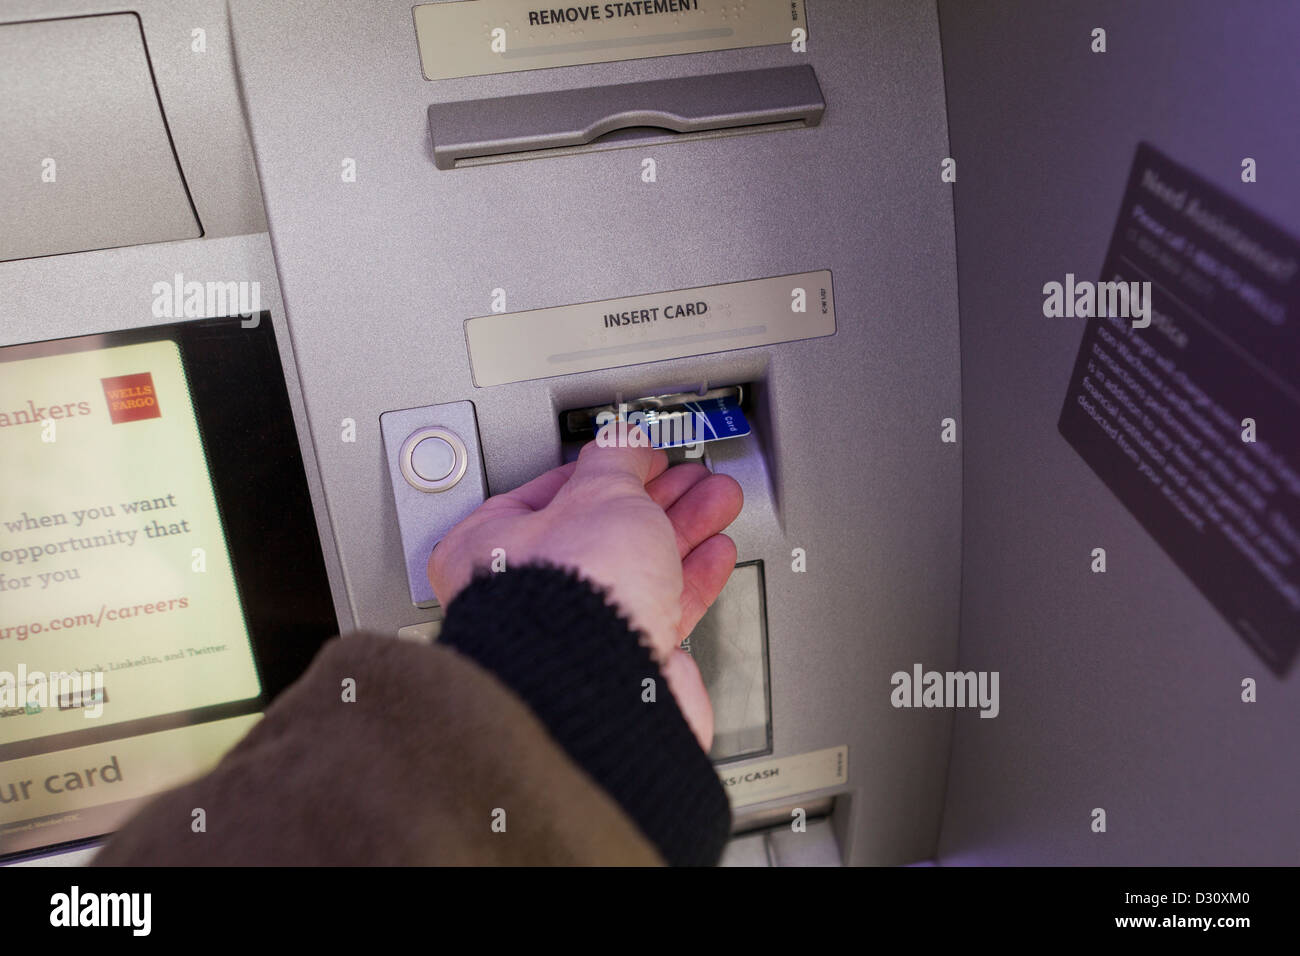 Man inserting bank card into ATM - Stock Image